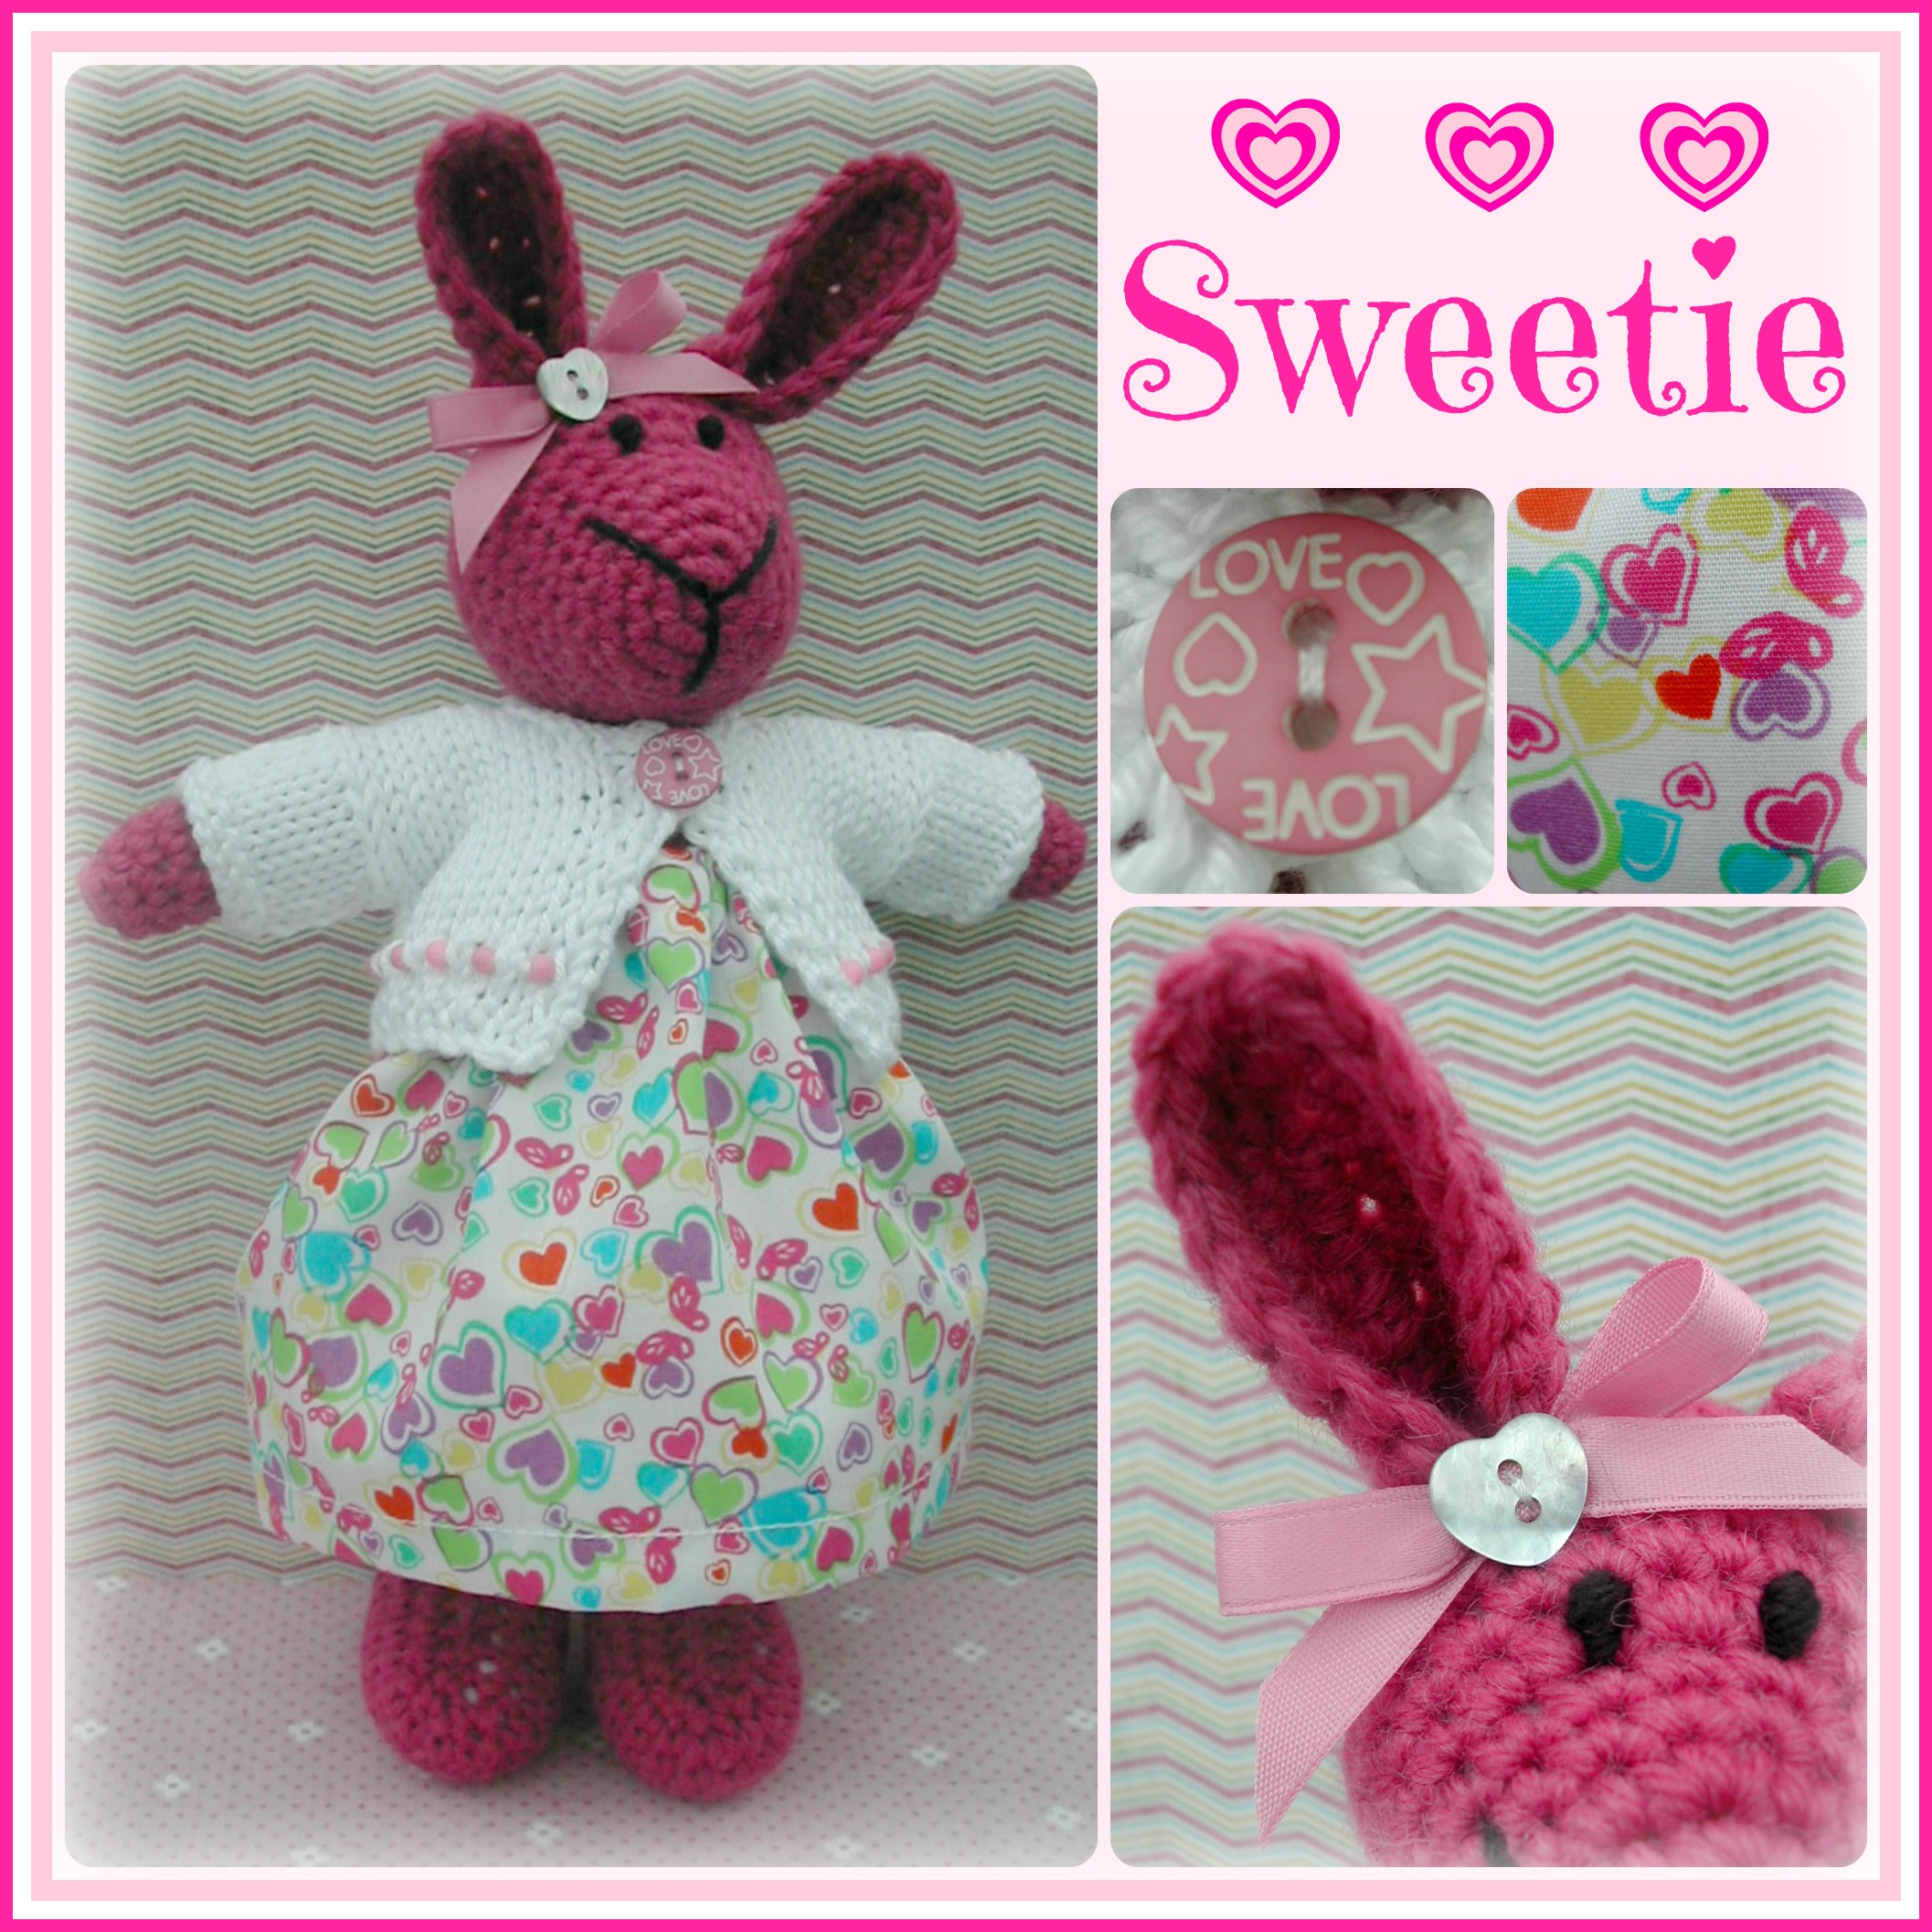 Sweetie Collage